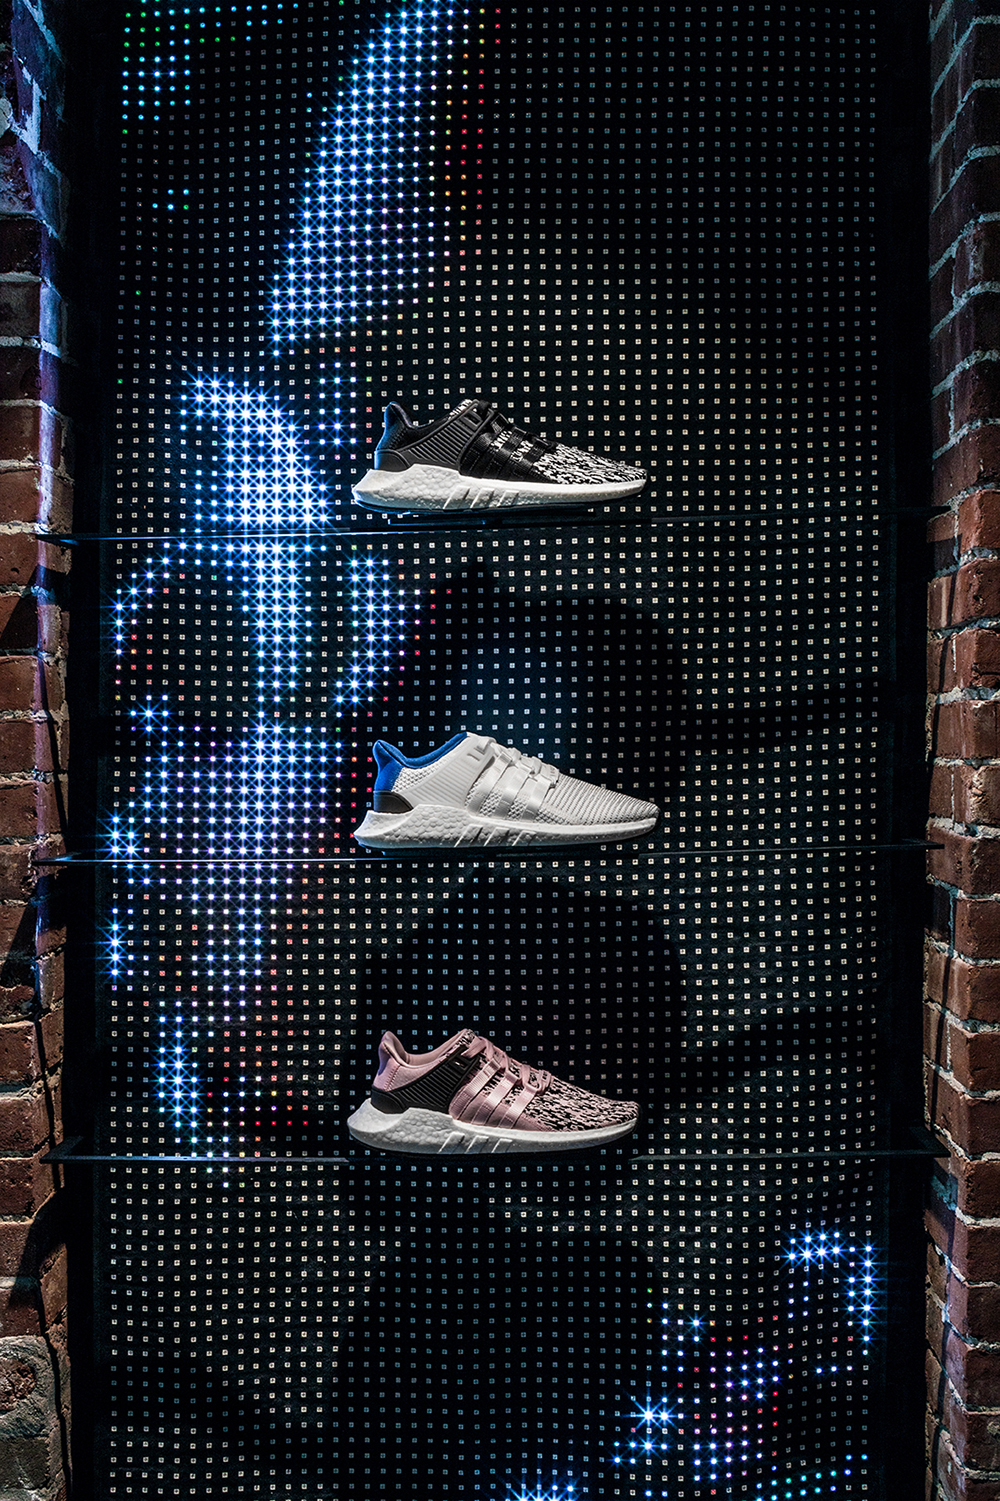 A closeup of three sneakers posted in front of a profile of a face shown on the LED curtain.